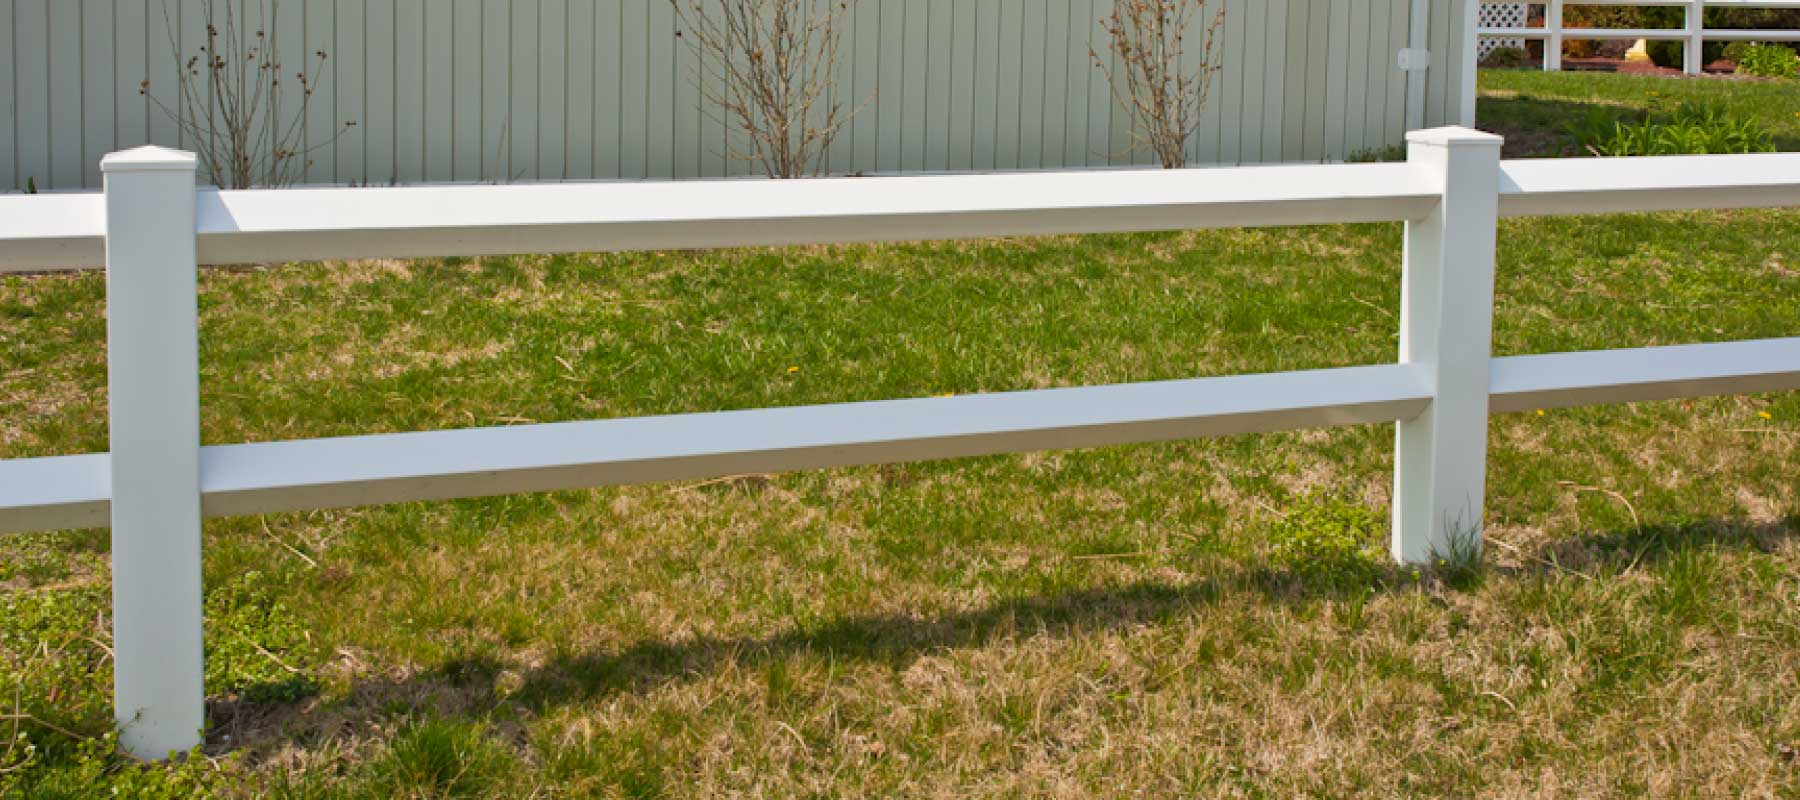 Rail diamond vinyl fence shoreline systems